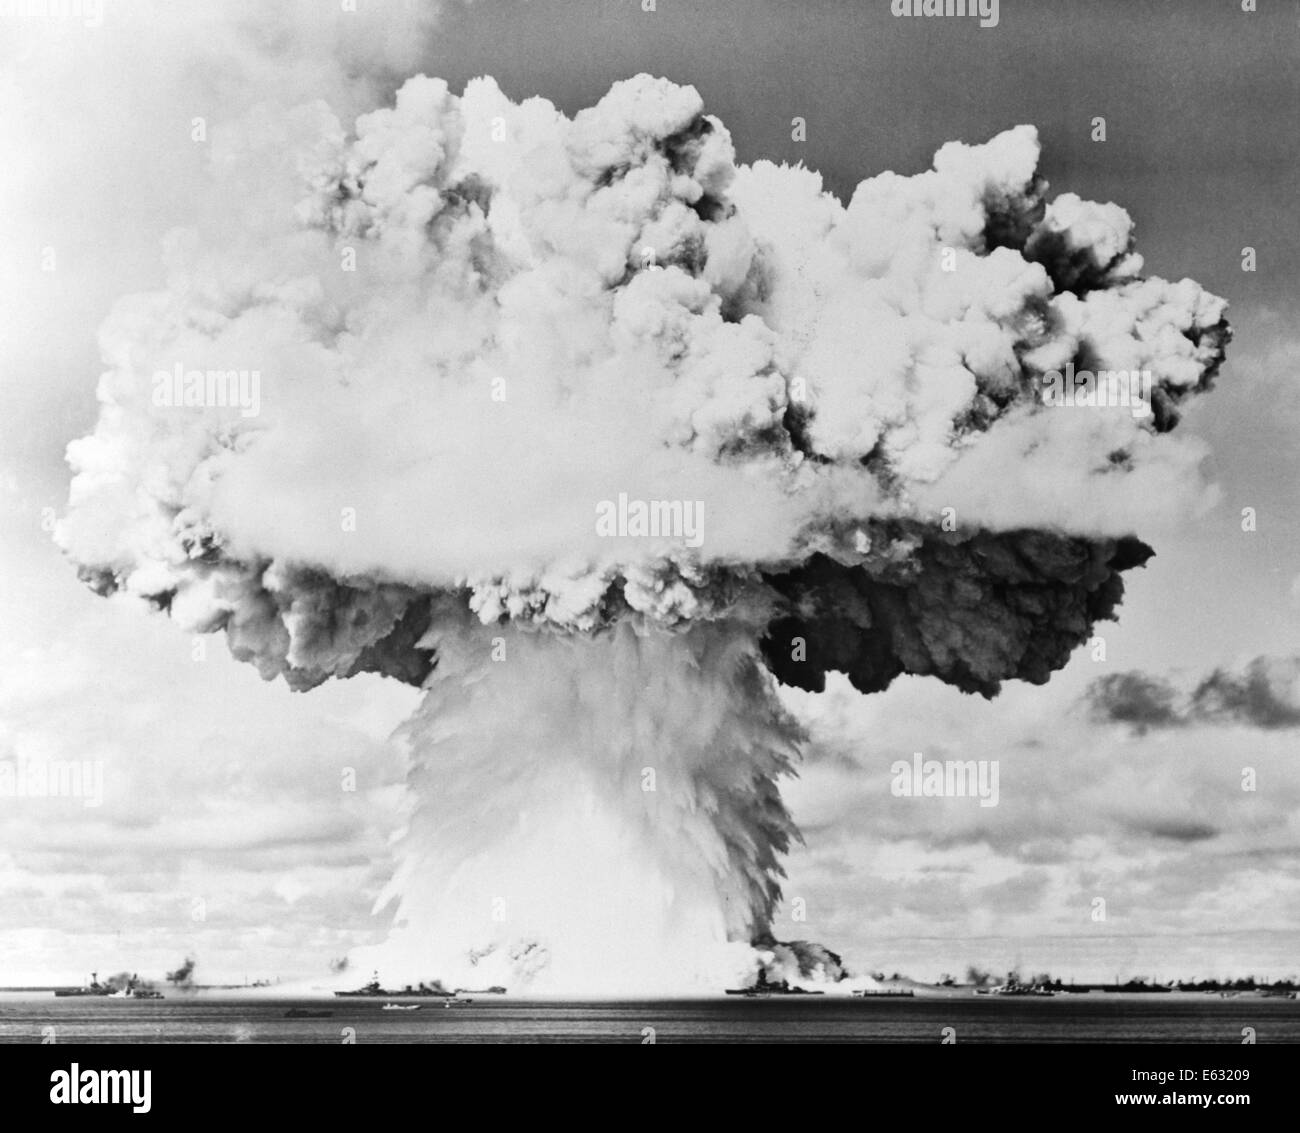 atomic bomb Write an editorial on harry s truman's decision to order the dropping of the atom bomb harry s truman & the decision to order the dropping of the atomic bomb.